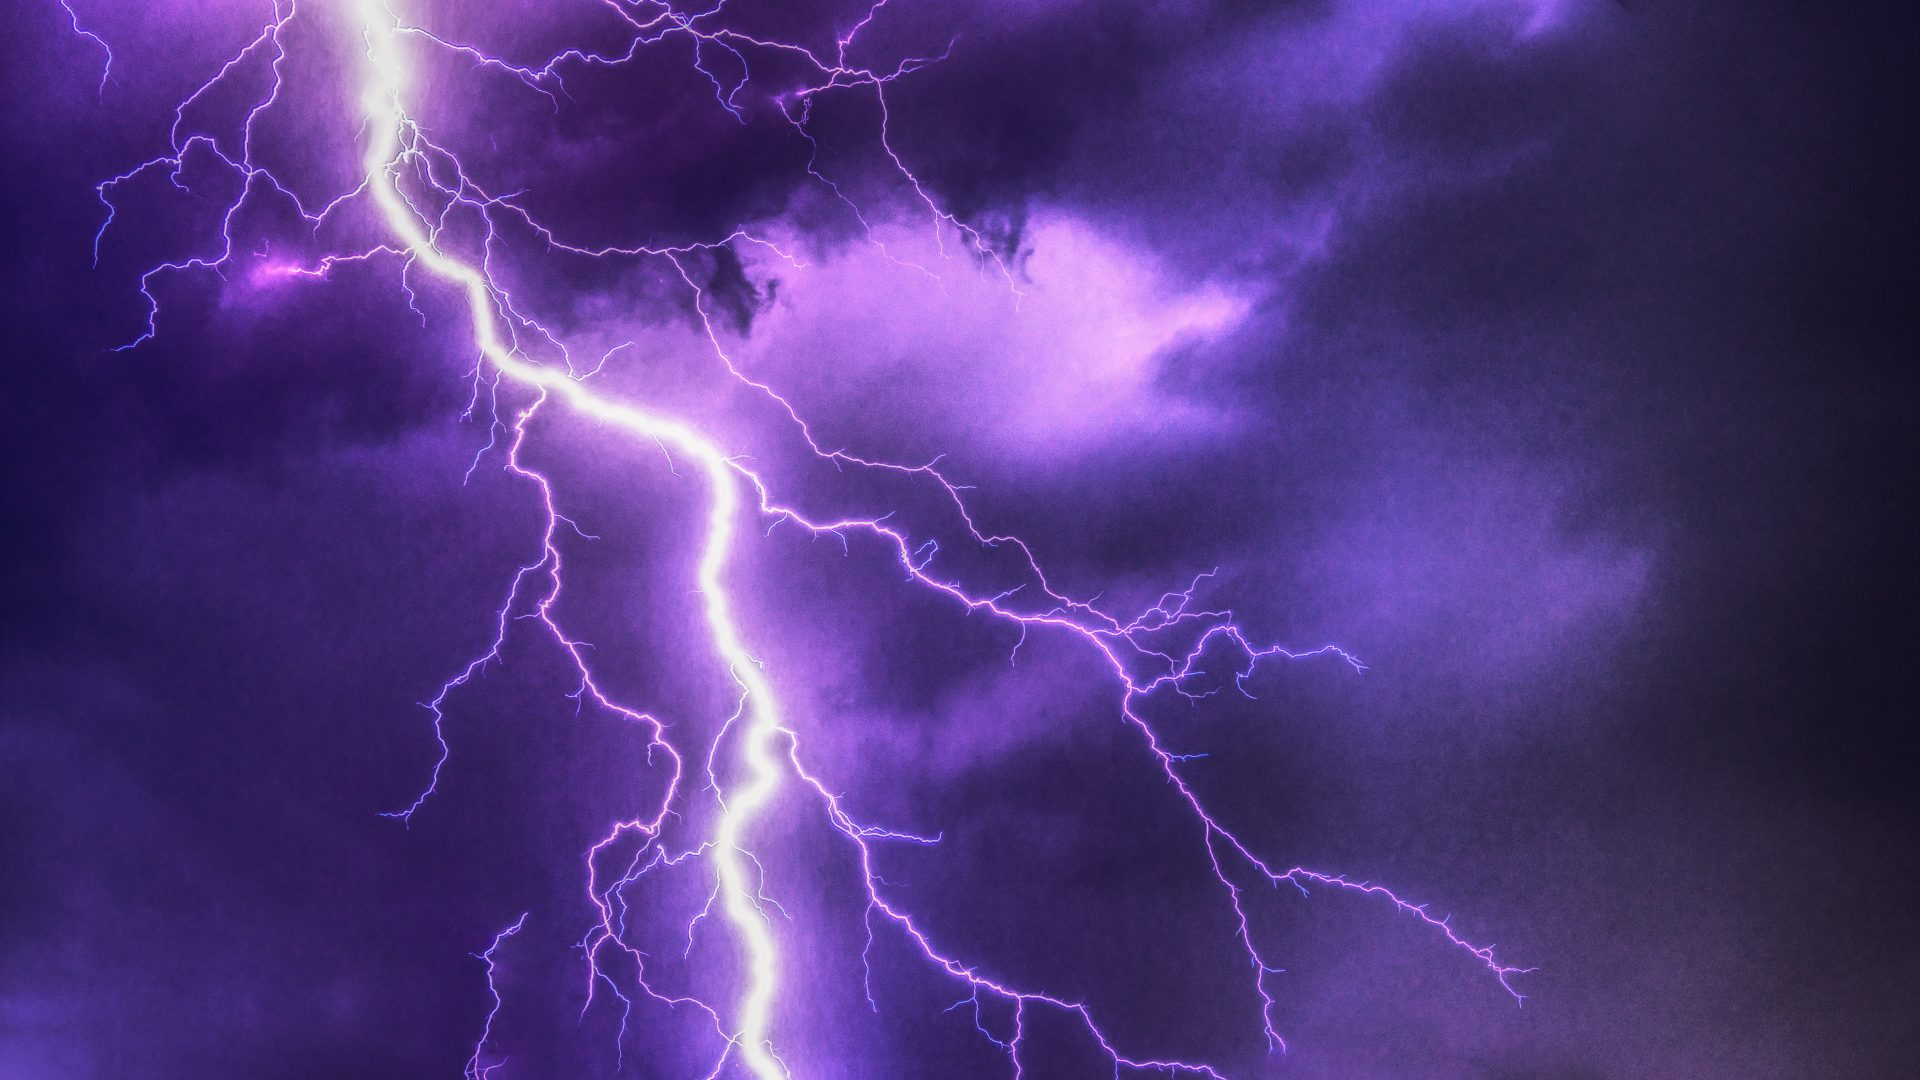 Purple Lightning 6K UHD Wallpaper | Wallpapers.gg